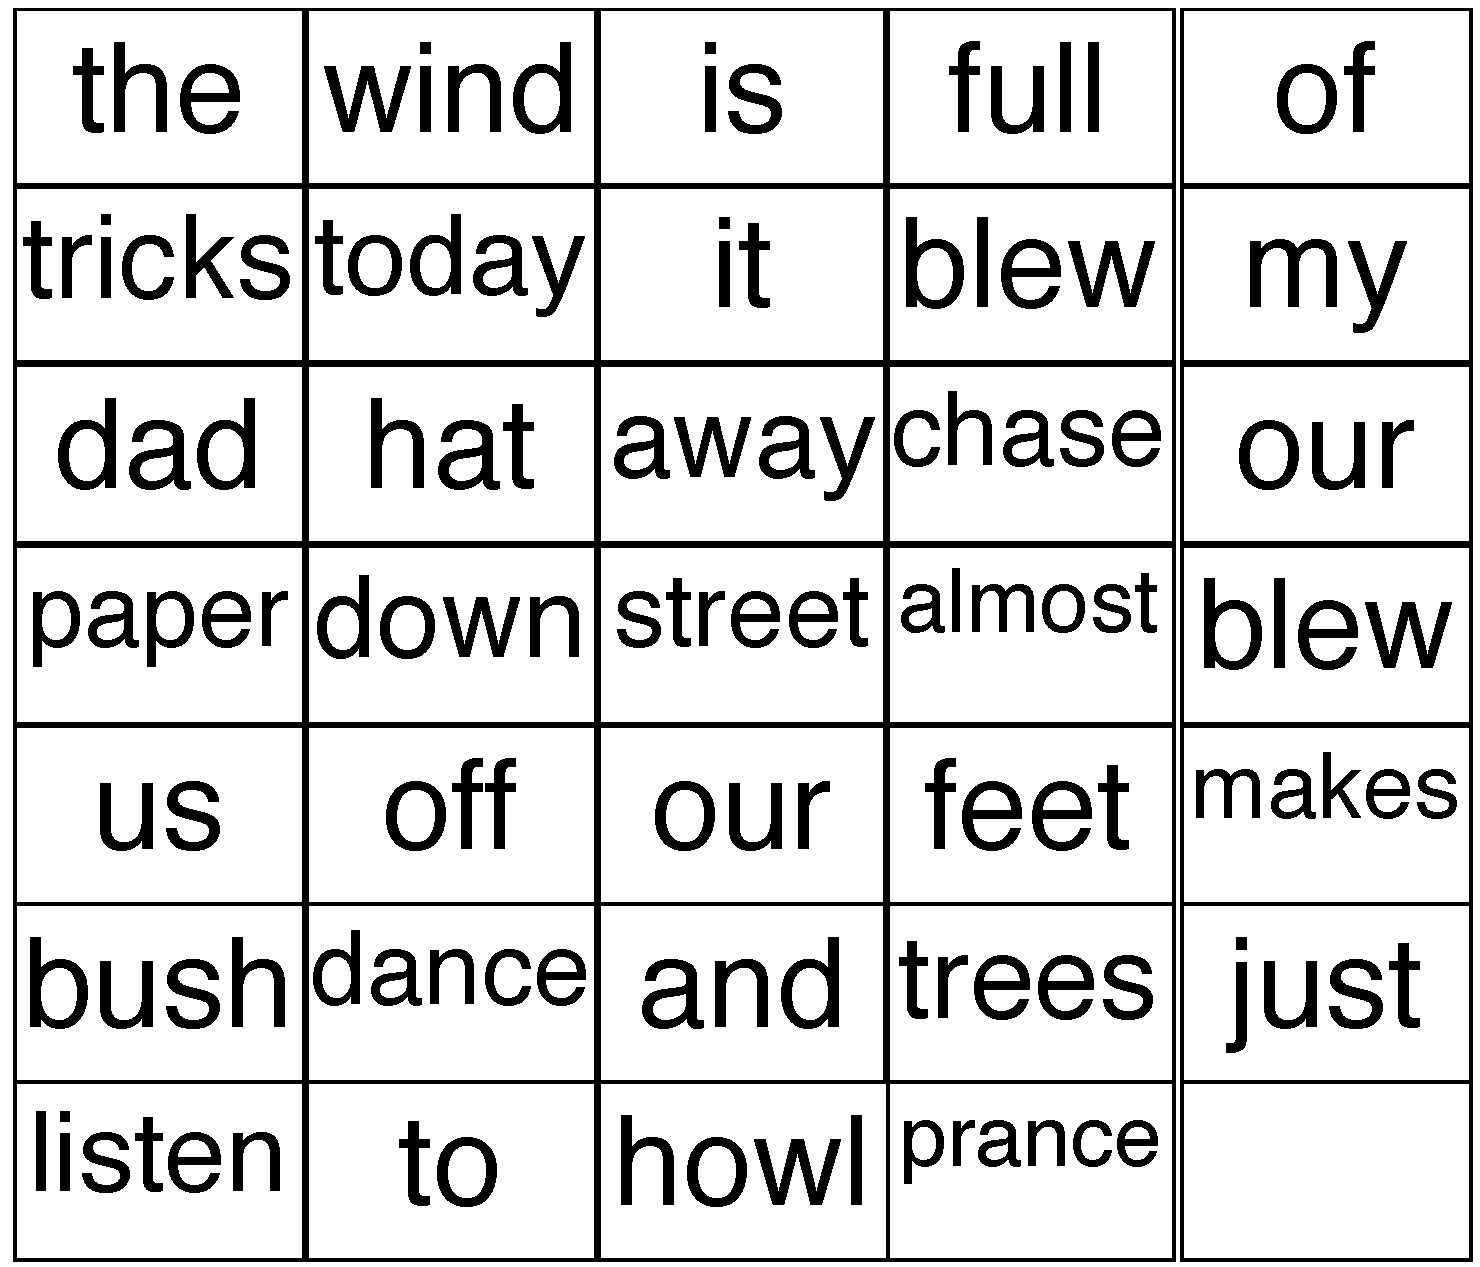 wind activities, wind poem, words that rhyme with play, words that rhyme with dance, words that rhyme with feet, word games, tally mark activities, wind tricks poem, emergent wind reader, poetry genre, poems for young kids, end punctuation activities, beginning capitalization activities